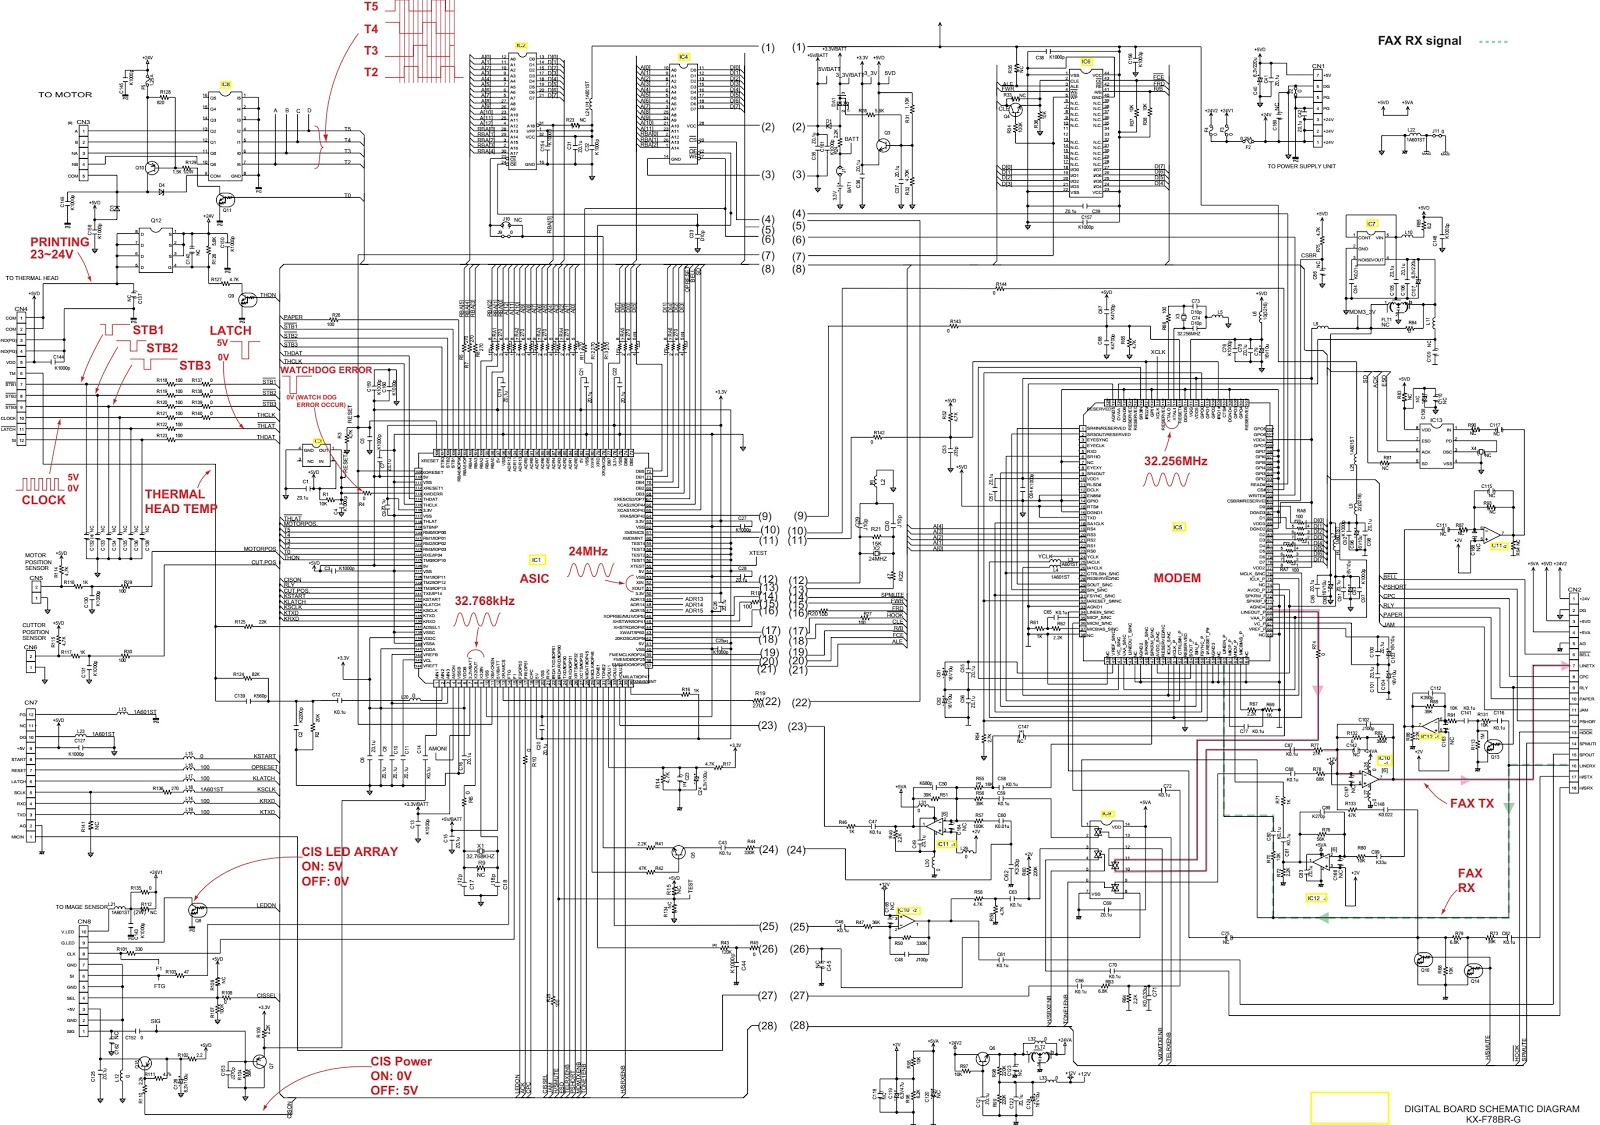 Panasonic Kx Ft78br G Power Supply Board Schematic Diagram